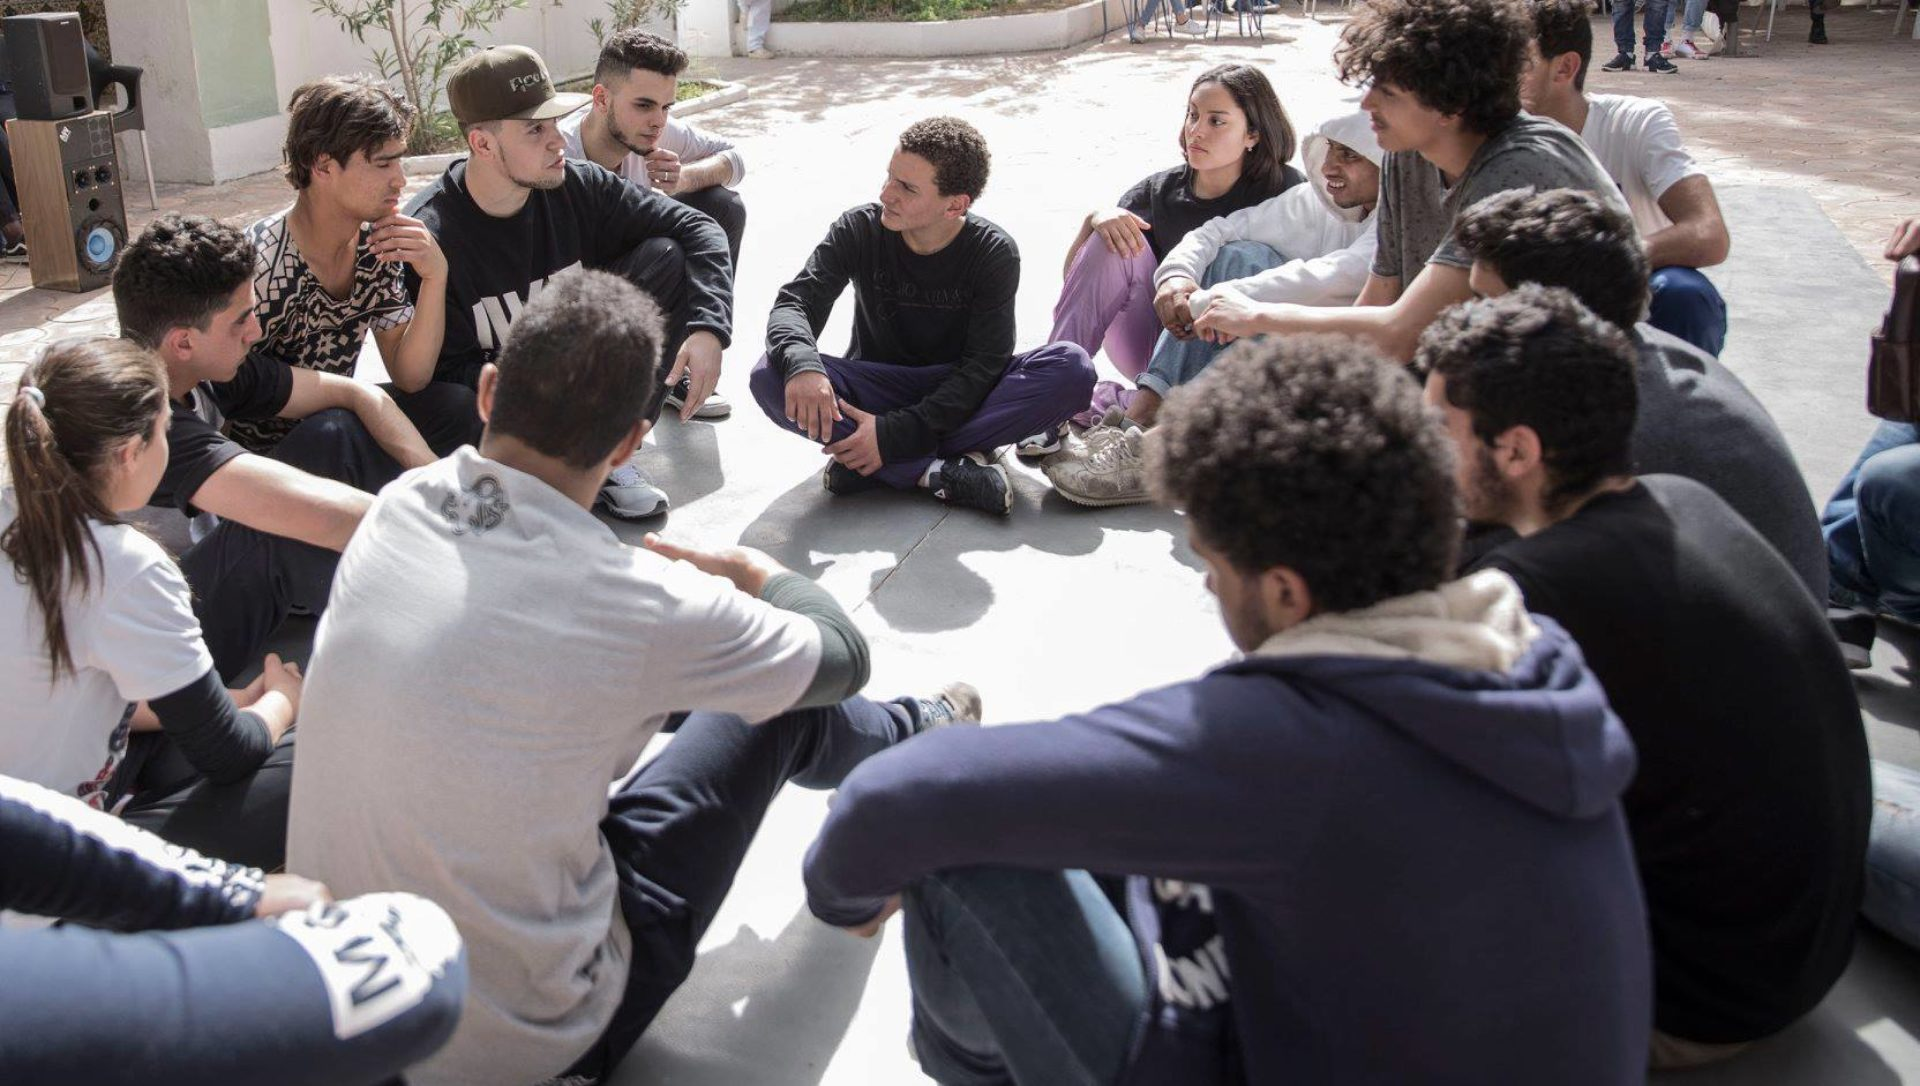 Bboy Diehard's advice to the new generation of Bboys in Tunisia